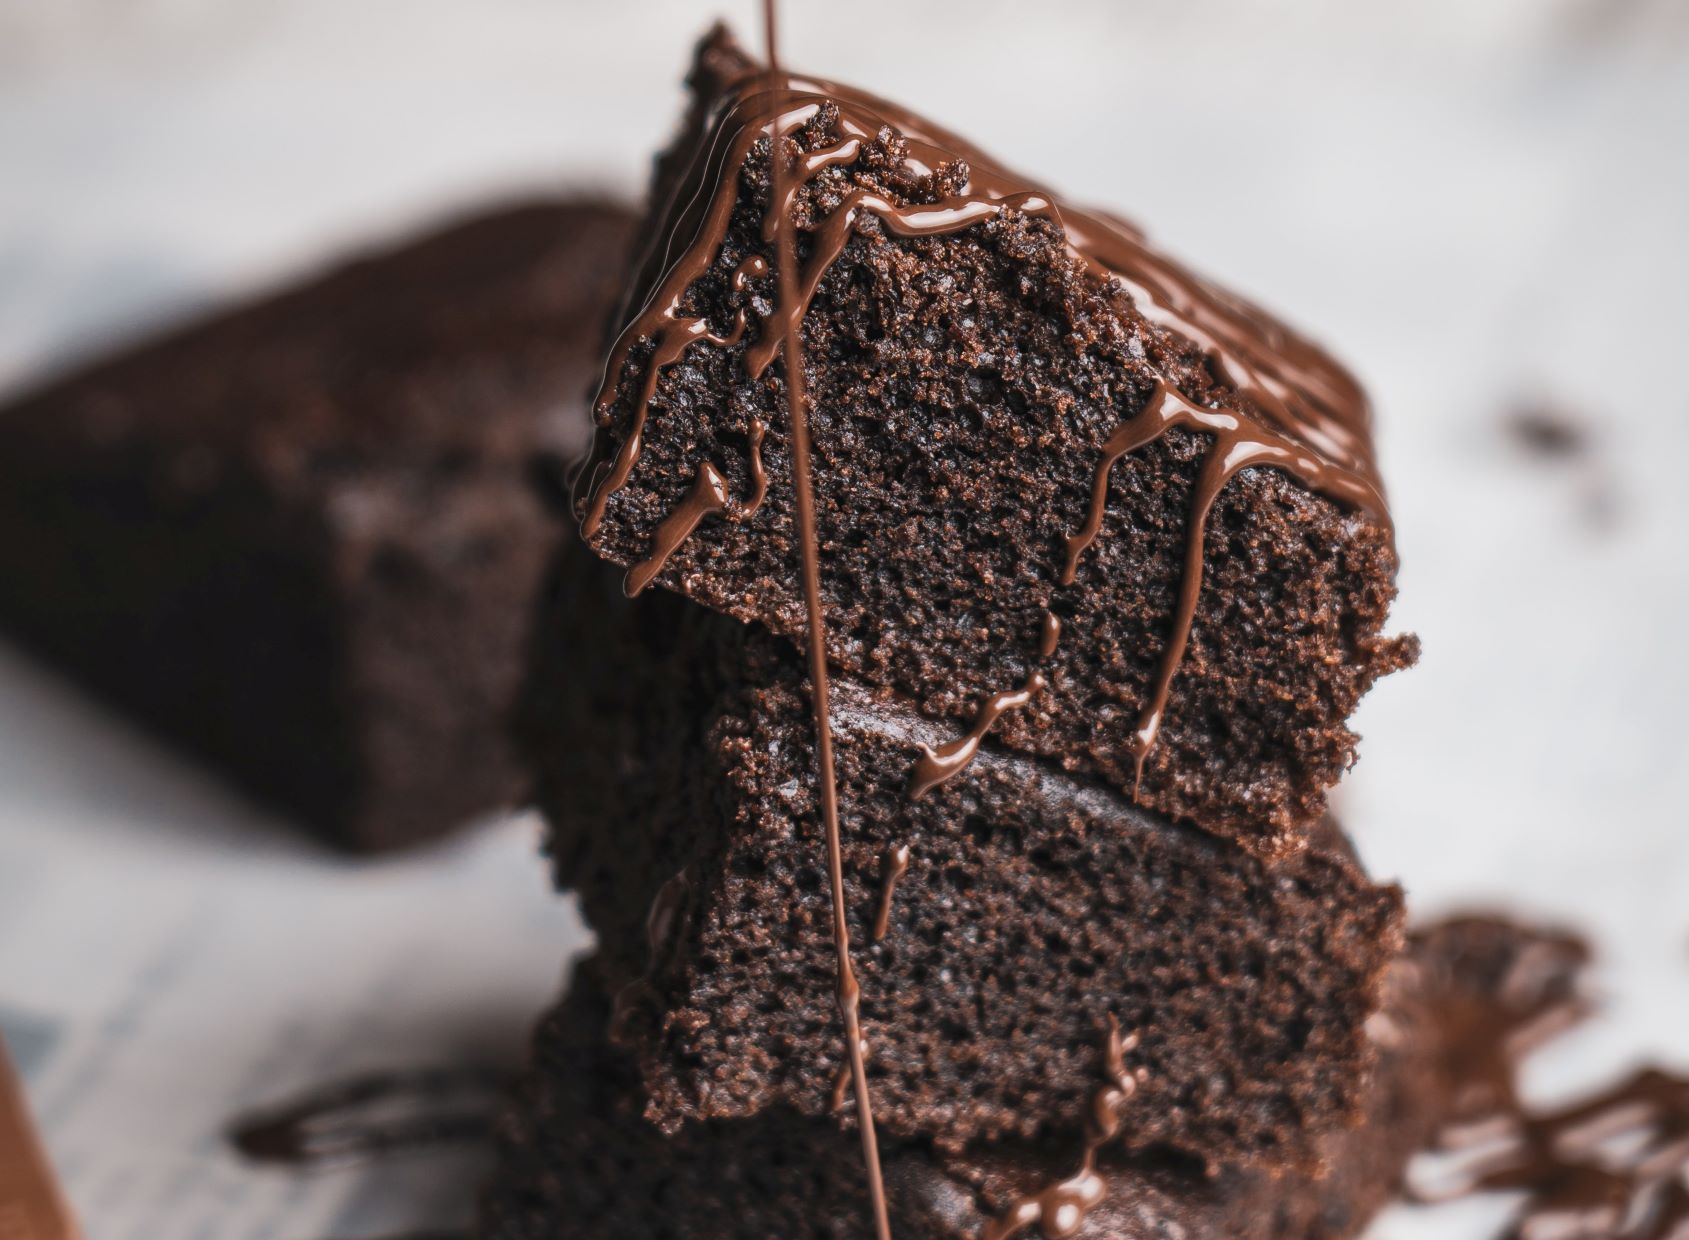 chocolate cake with chocolate sauce drizzled on top